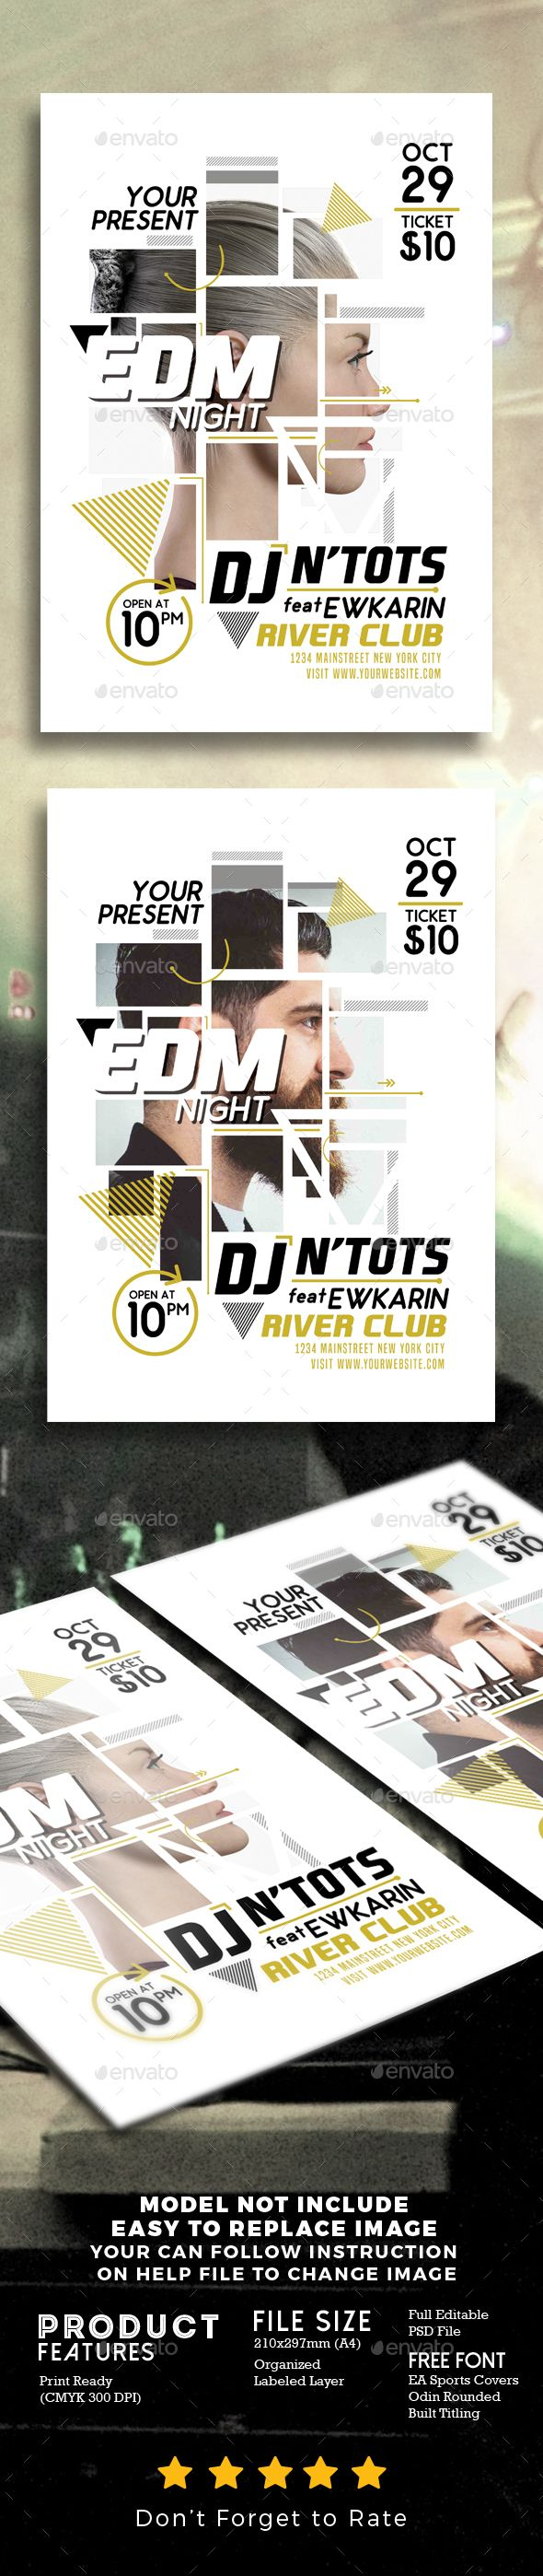 EDM Night Party Flyer Template PSD